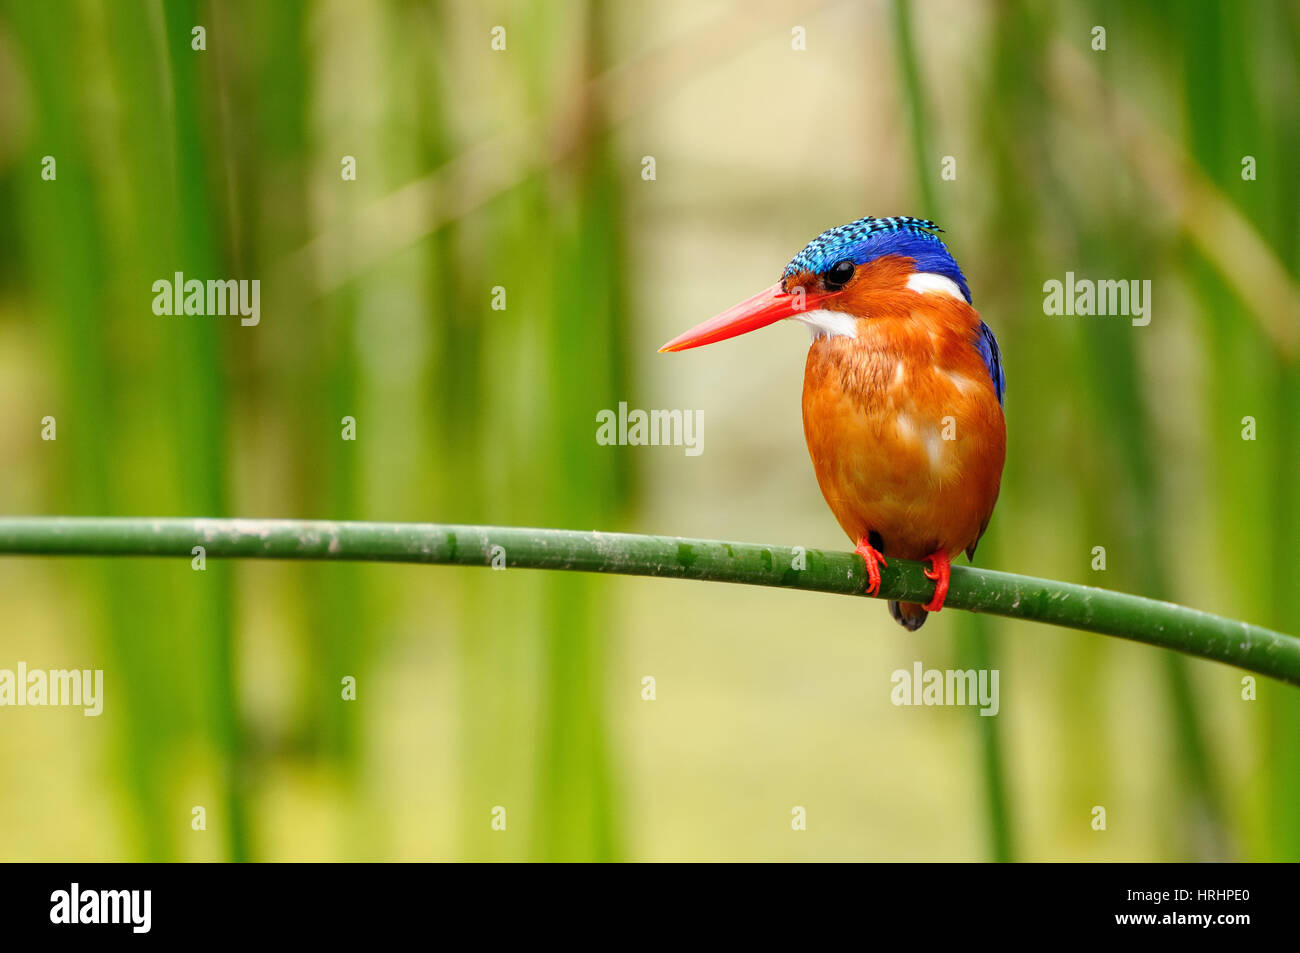 Kingfisher in the Amora Gedel national park in the vicinity of the Awasa town in Kenya - Stock Image